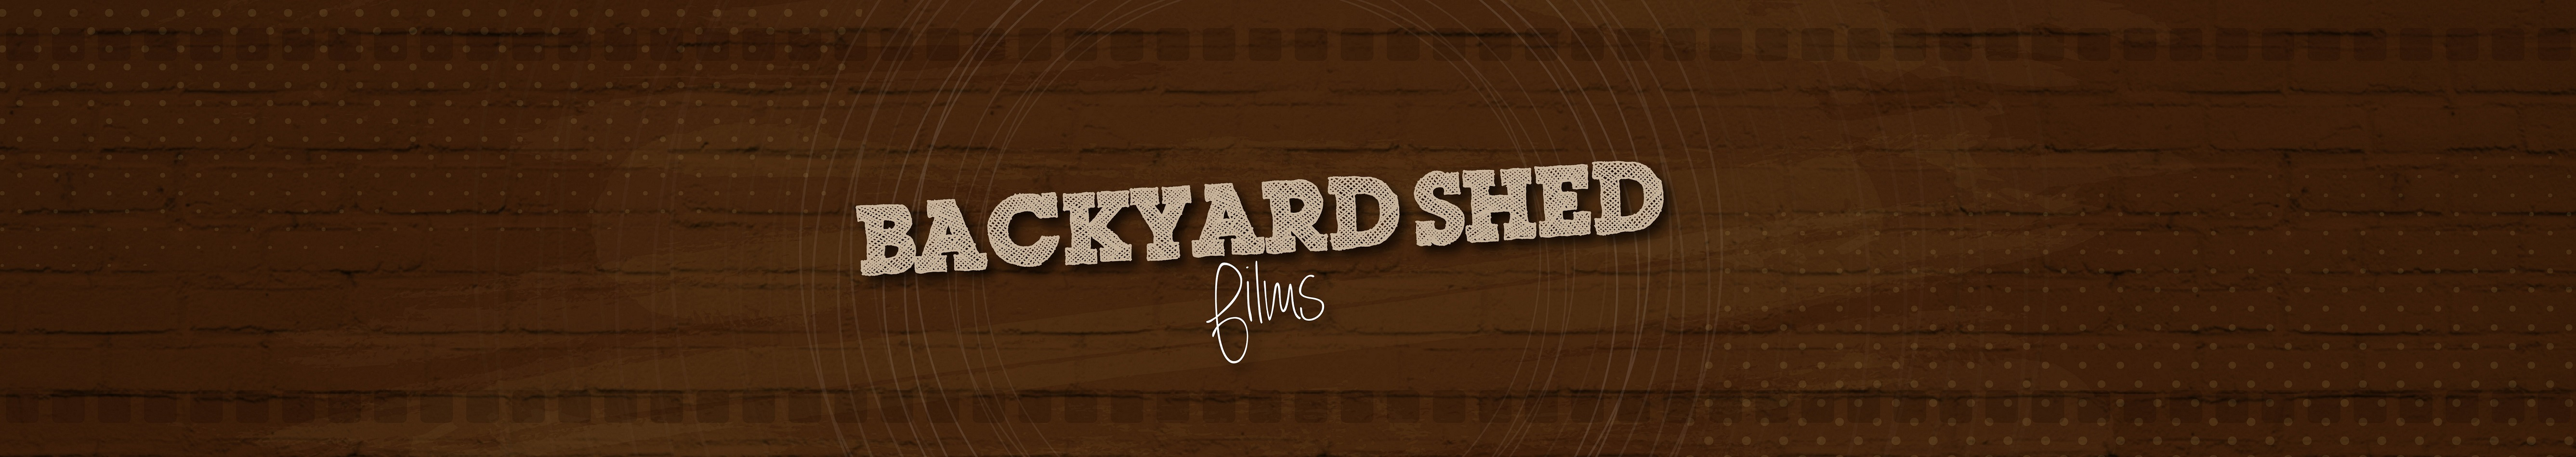 Homepage 10 – Video Slider | Backyard Shed Films